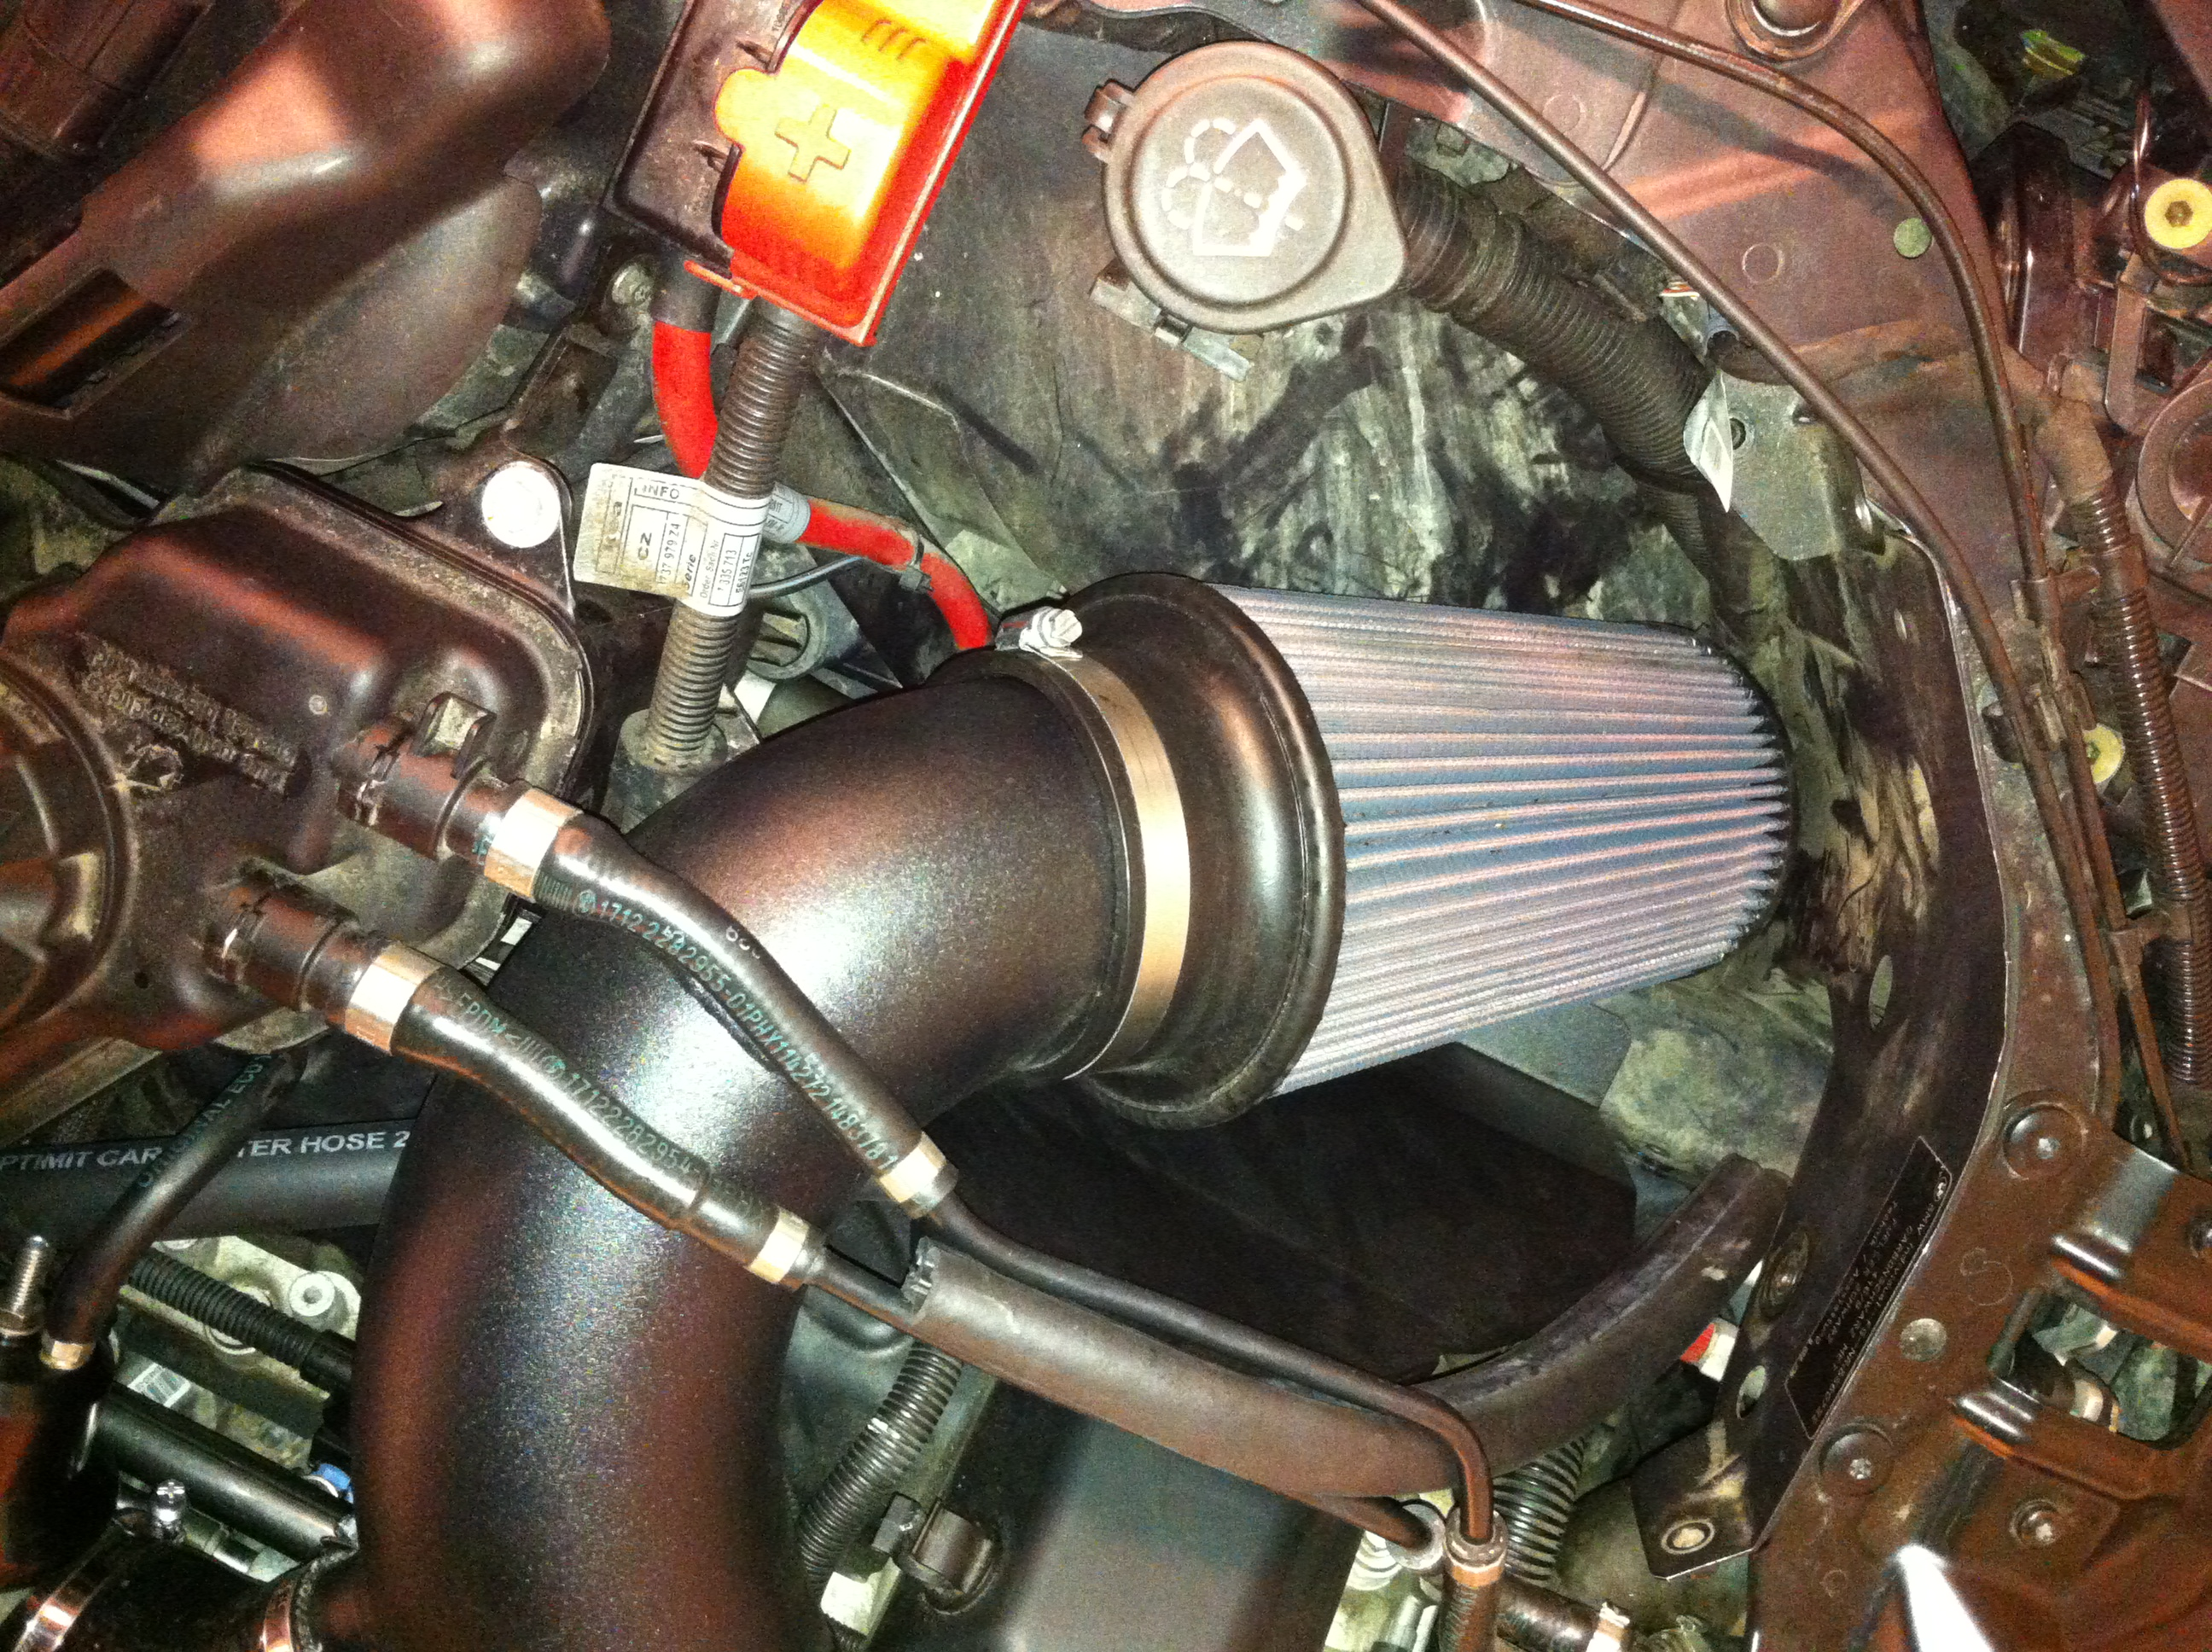 Bigger/better intake filter for ESS VT setup?-img_1087.jpg